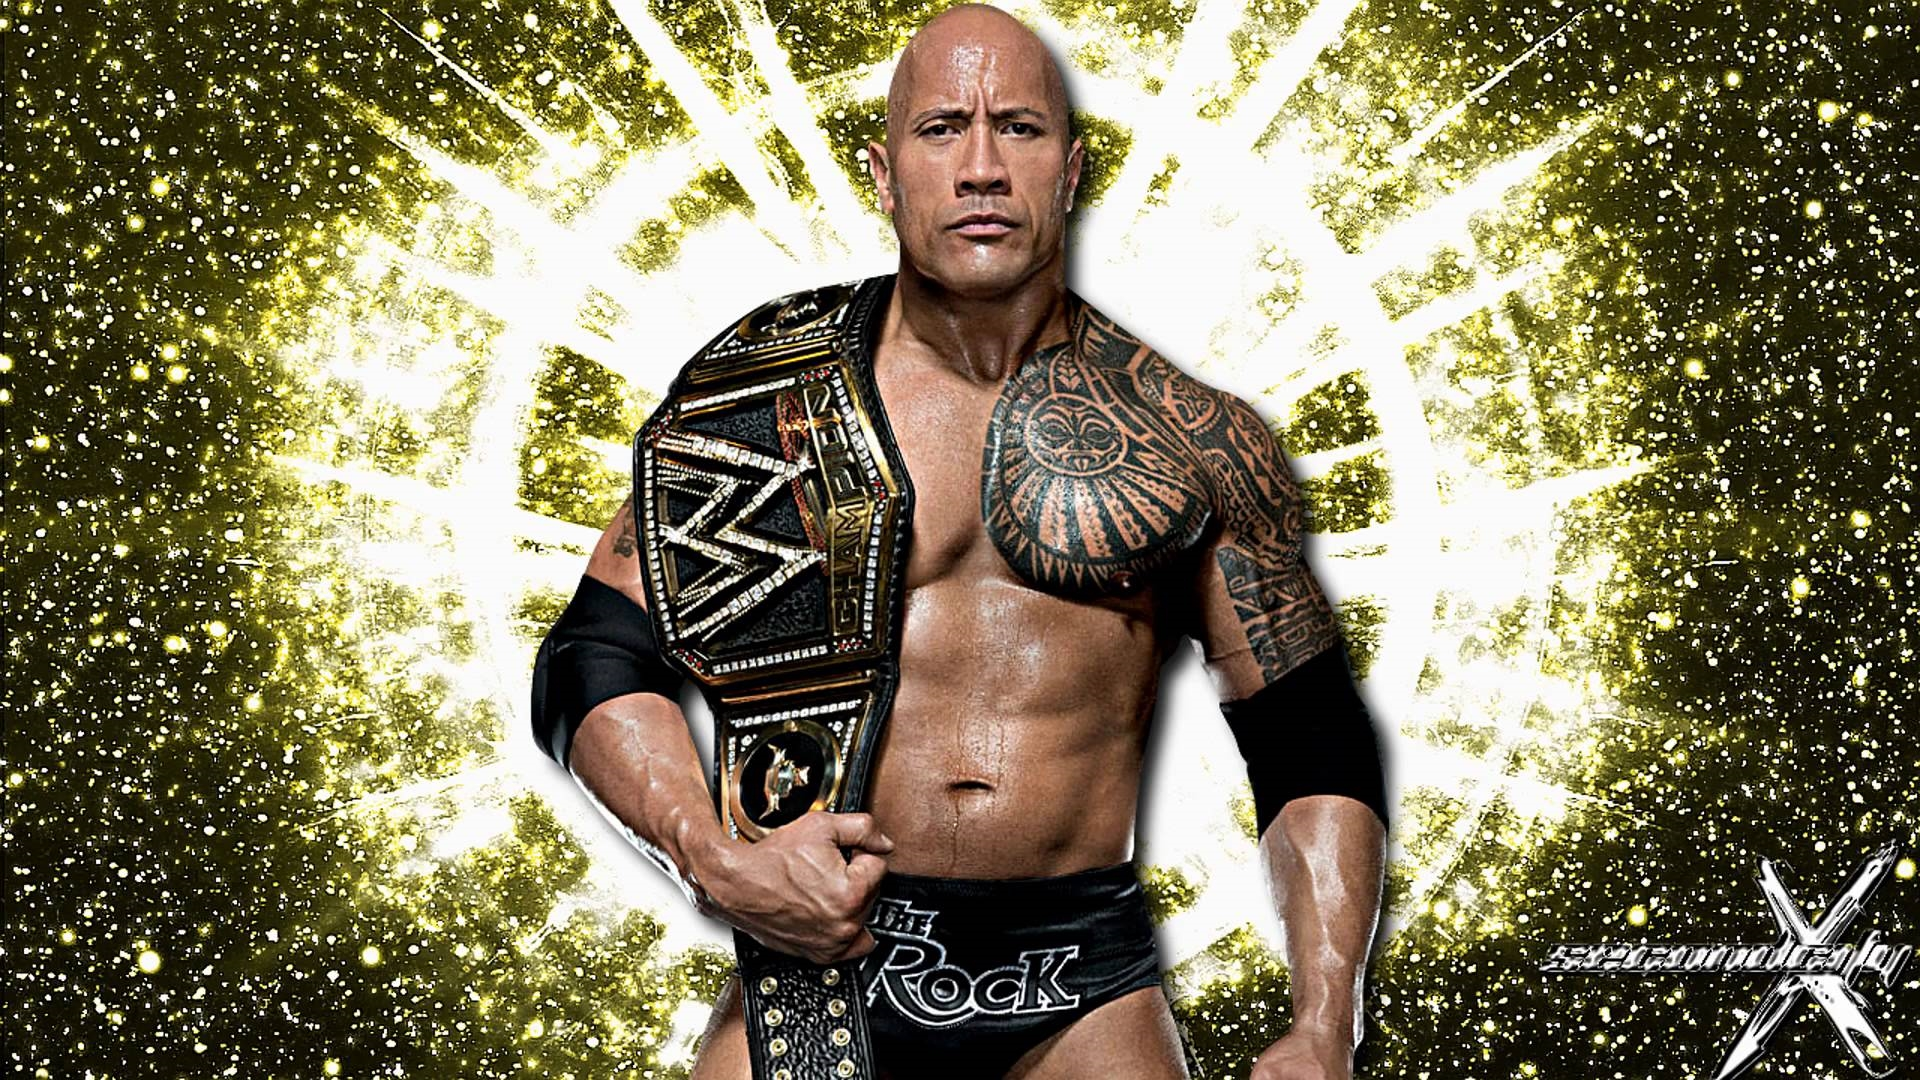 rock wwe desktop background wallpaper